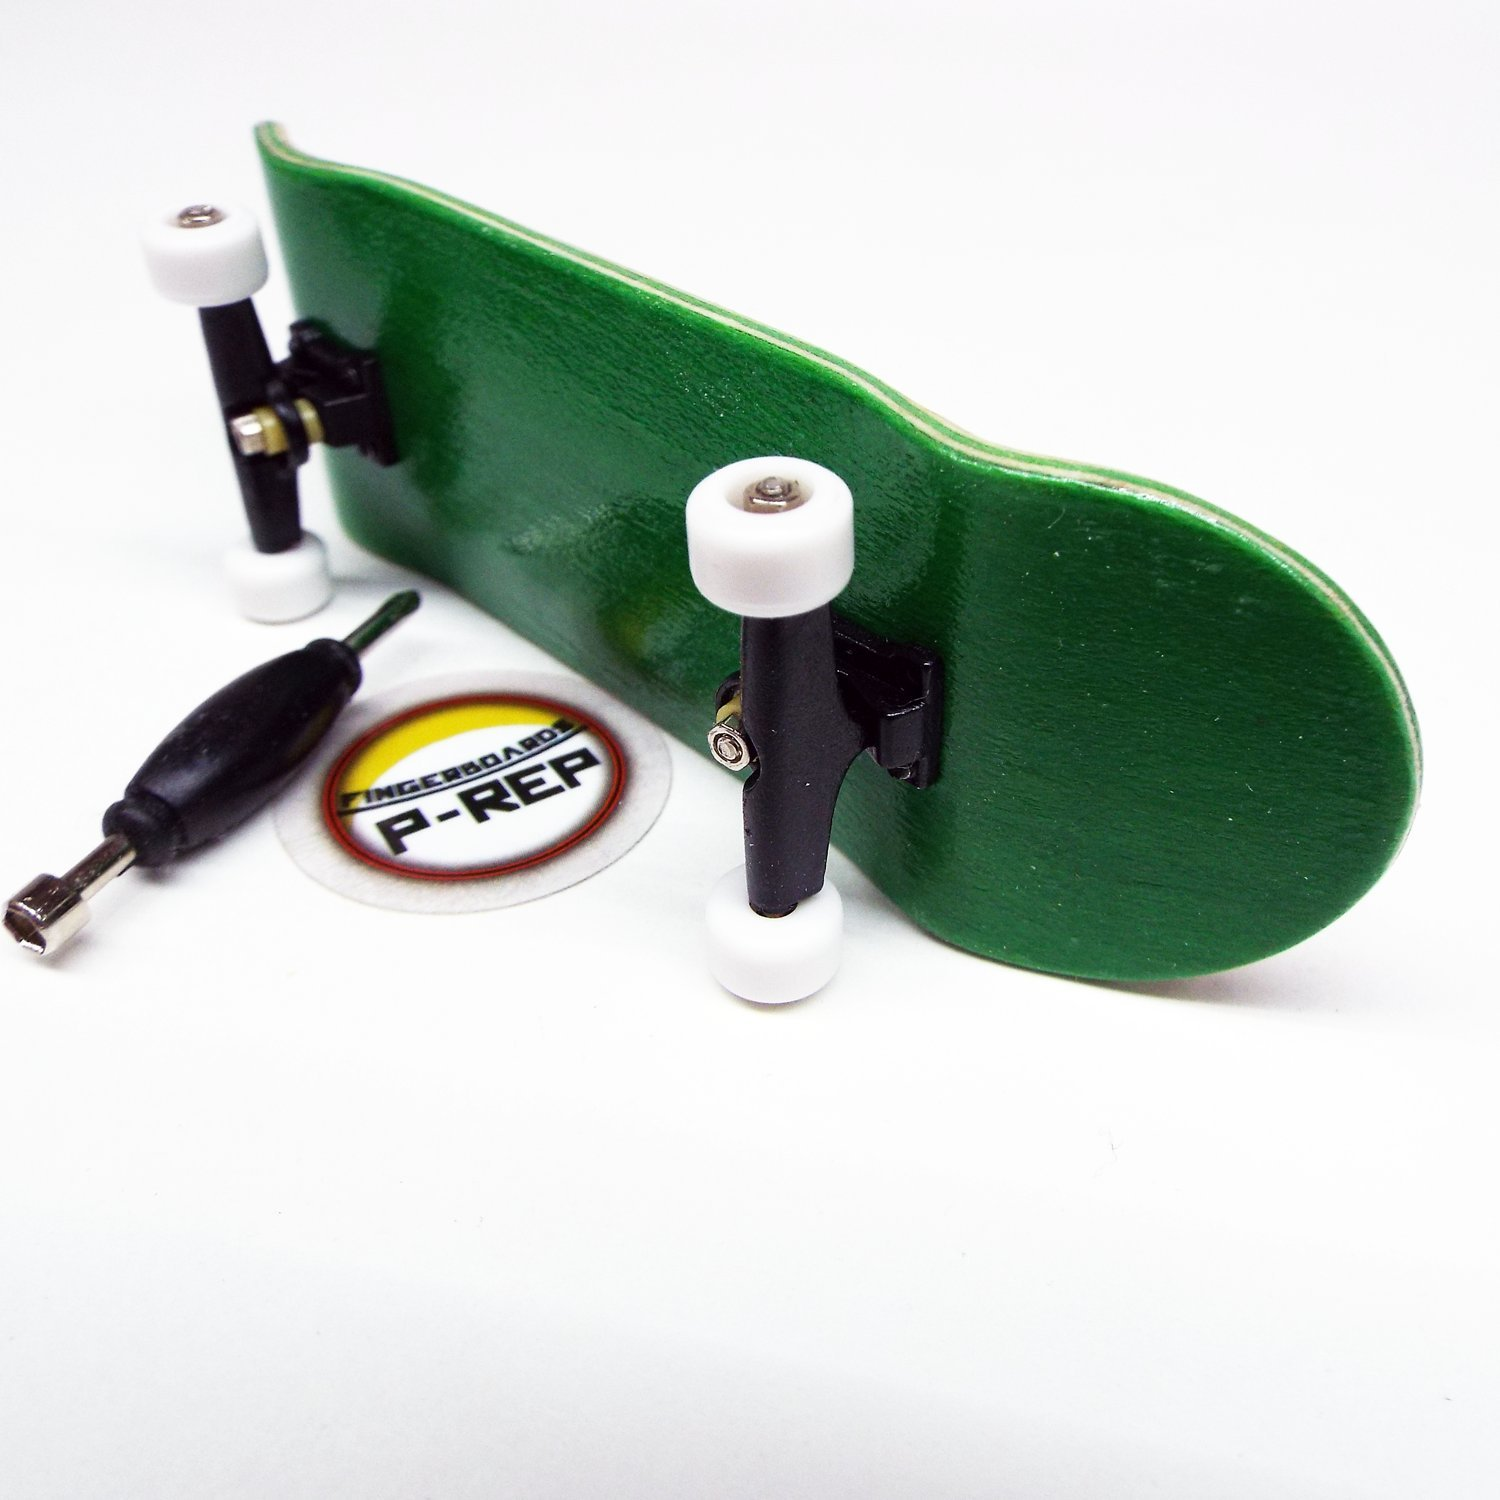 Peoples Republic Green Complete Wooden Fingerboard with Basic Bearing Wheels - Starter Edition by Peoples Republic